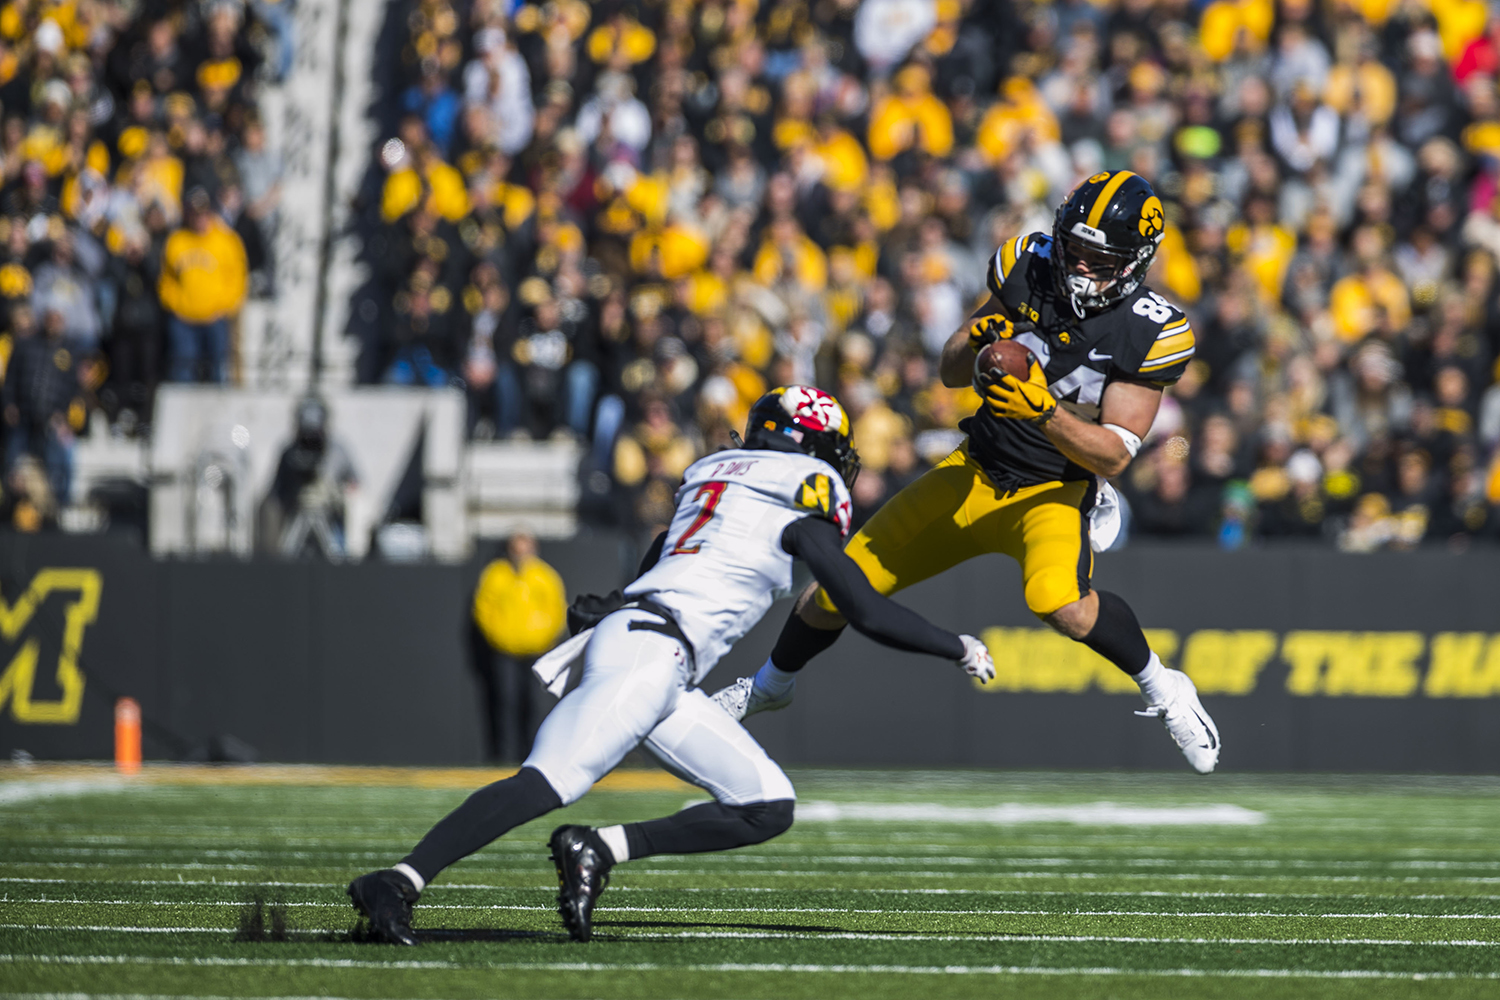 Iowa+wide+receiver+Nick+Easley+catches+a+pass+during+the+Iowa%2FMaryland+homecoming+football+game+at+Kinnick+Stadium+on+Saturday%2C+October+20%2C+2018.+The+Hawkeyes+defeated+the+Terrapins%2C+23-0.+